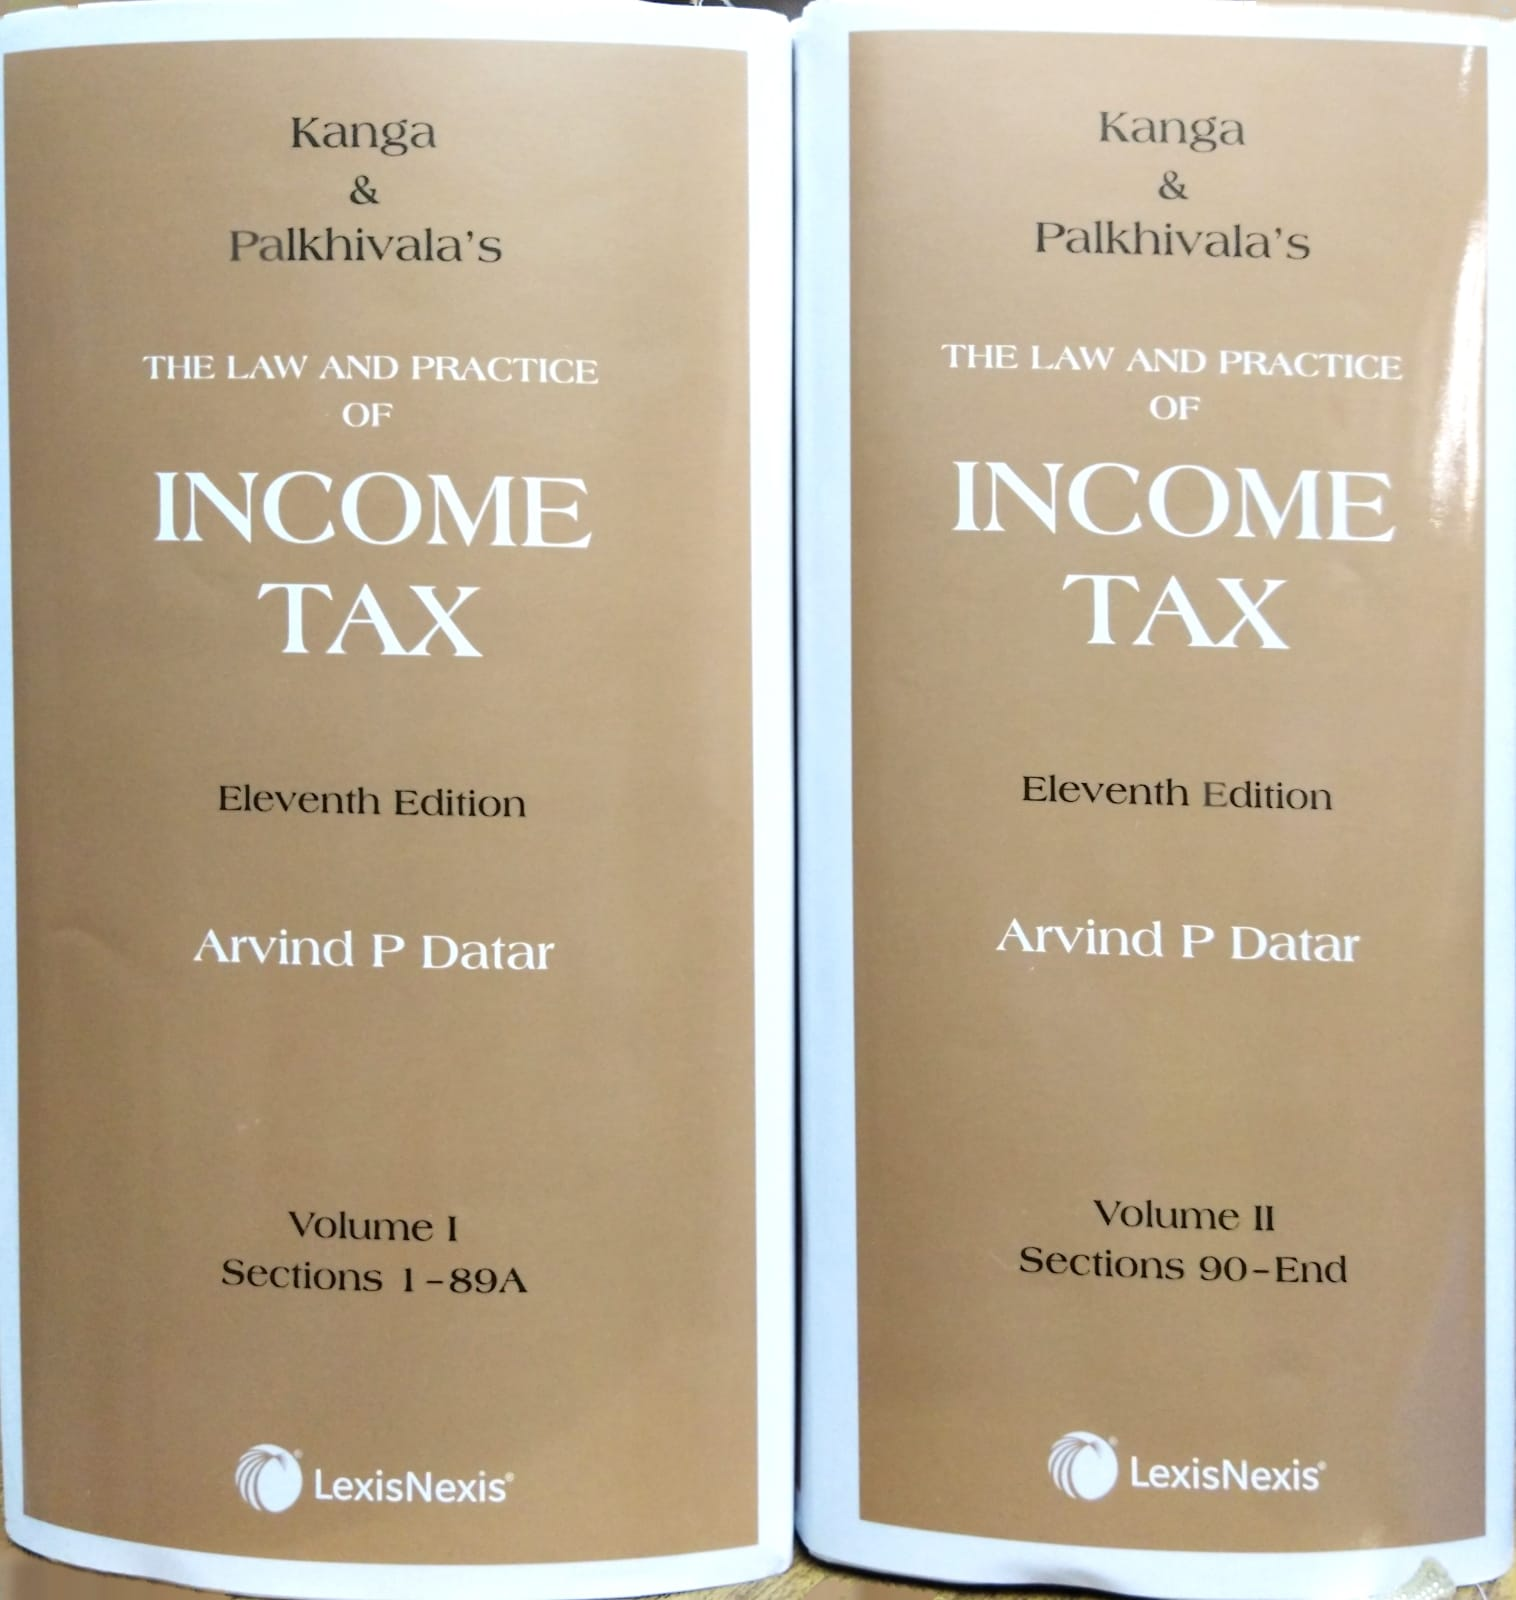 Kanga & Palkhivala's The Law and Practice of Income Tax 11th Edition (02 vols. set)